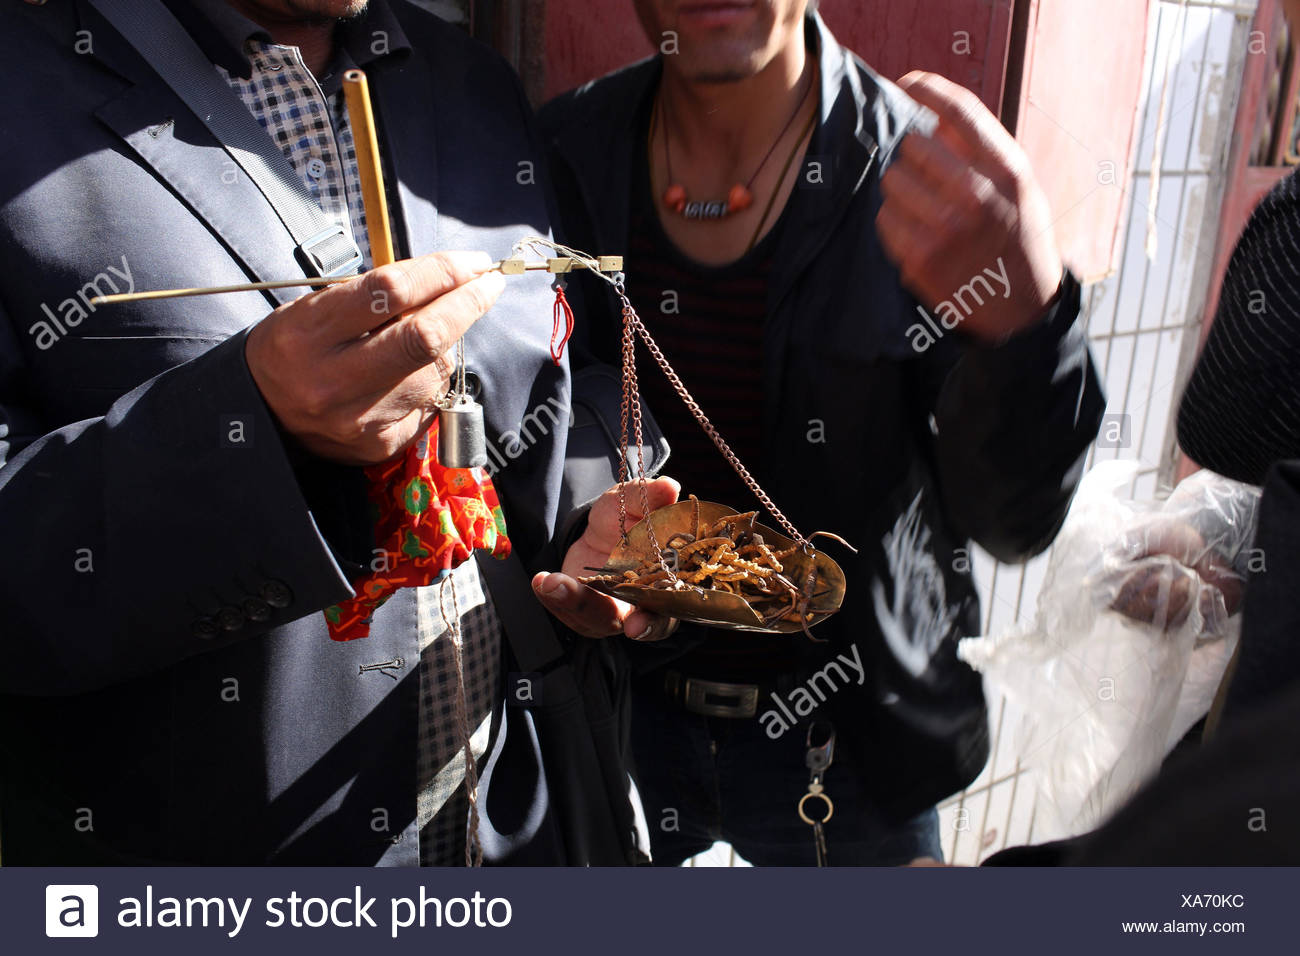 Tibetans selling caterpillar fungus in a small market. - Stock Image